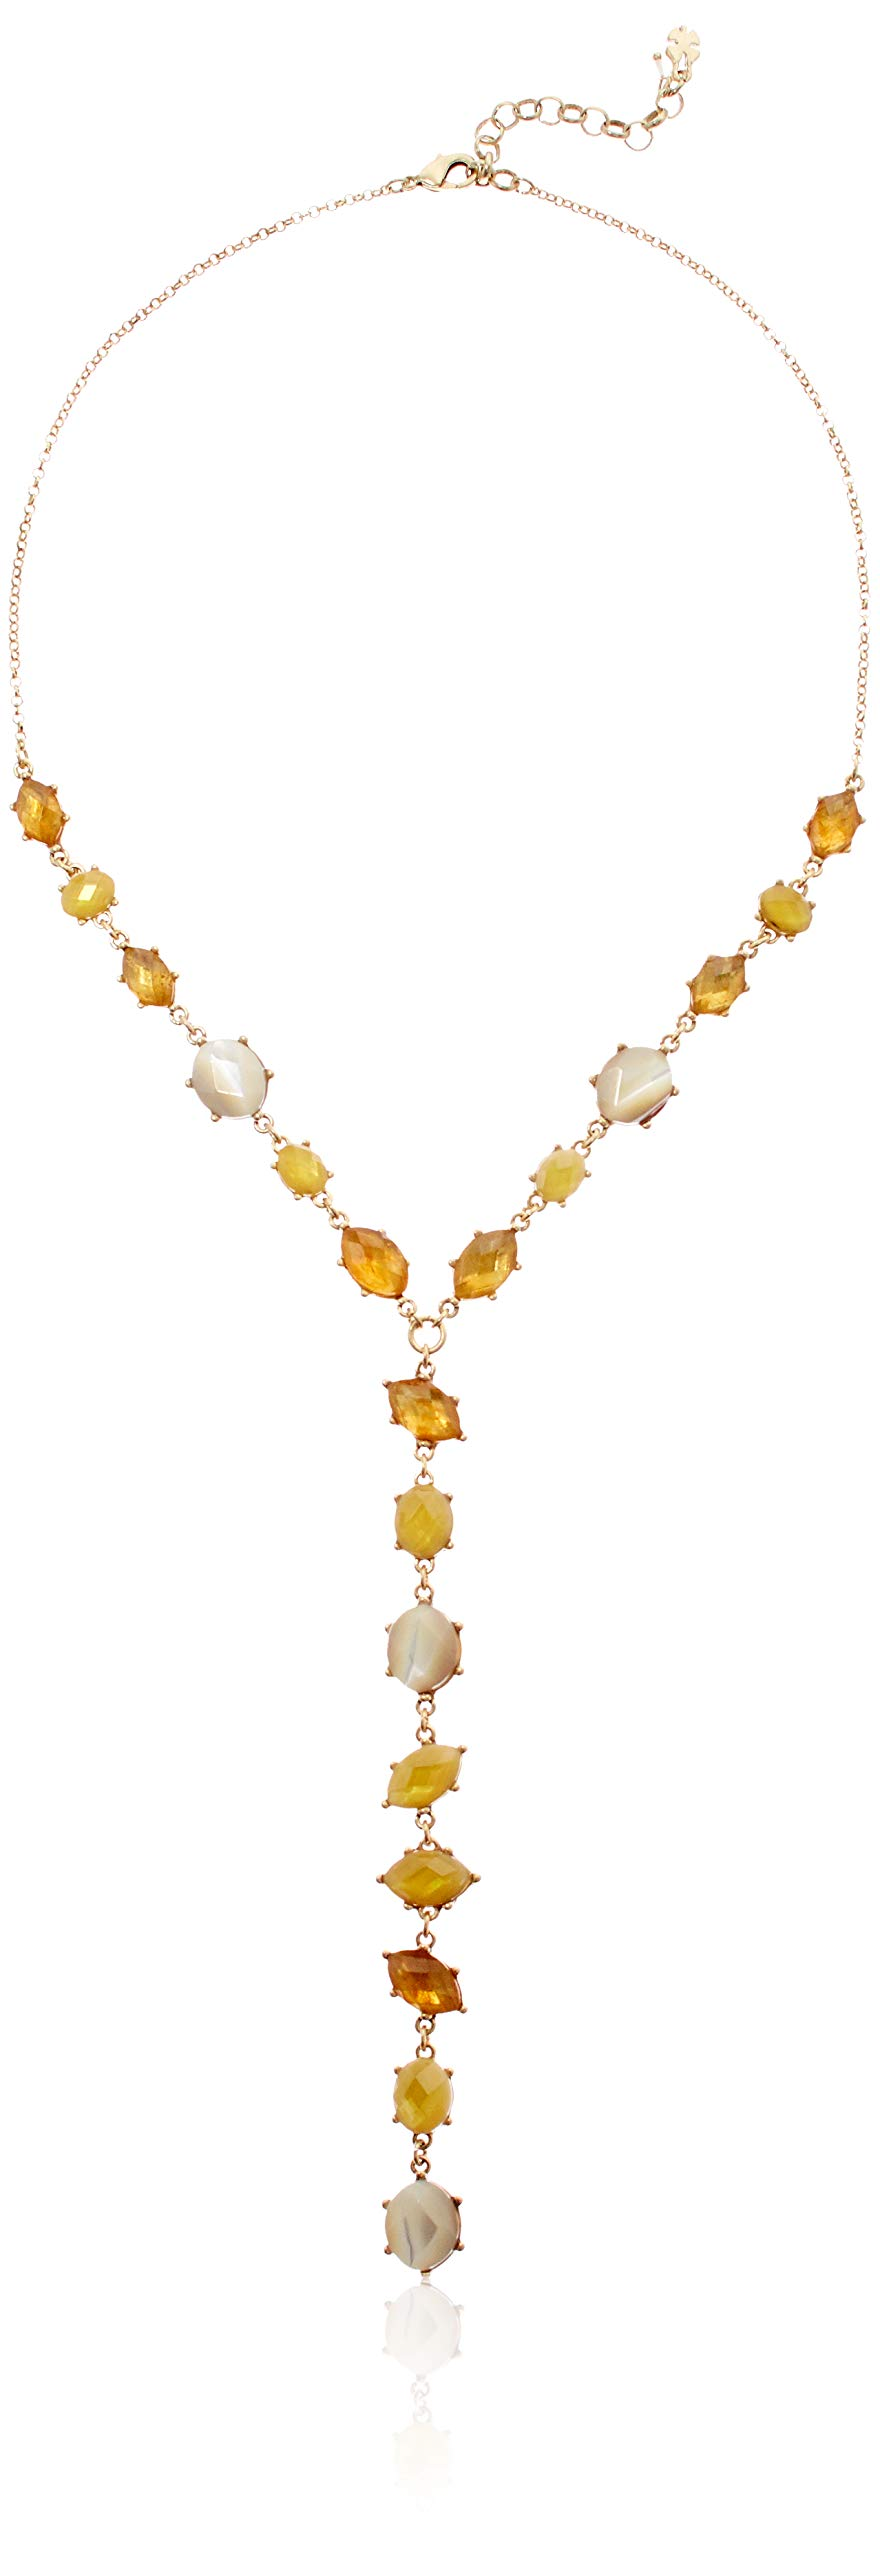 Lucky Brand Women's Multi Color Set Stone Y Necklace, Gold, One Size by Lucky Brand